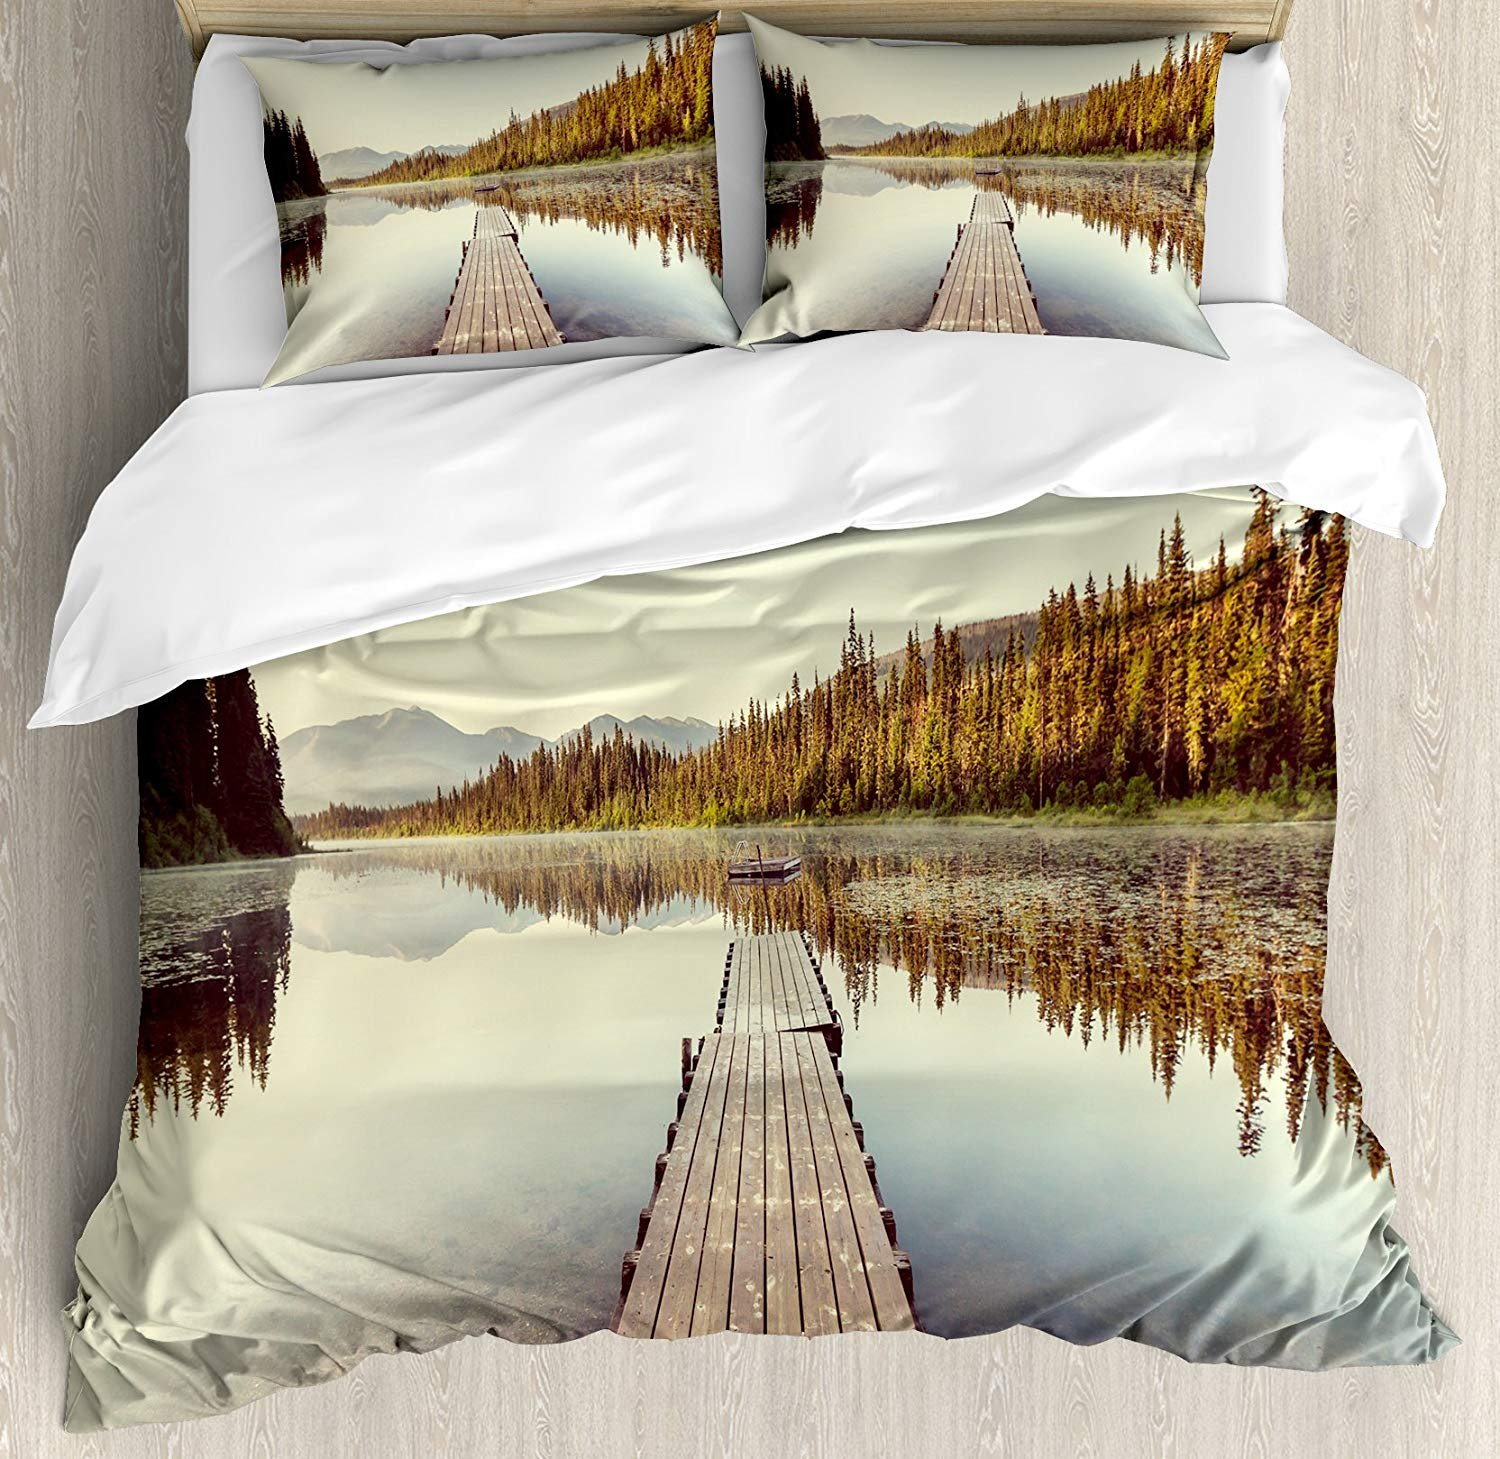 Anzona Twin Size Fall 3 PCS Duvet Cover Set, Wooden Pier on The Lake Serene Morning in The Woods Fishing Misty Recreational Image, Bedding Set Bedspread for Children/Teens/Adults/Kids, Multicolor